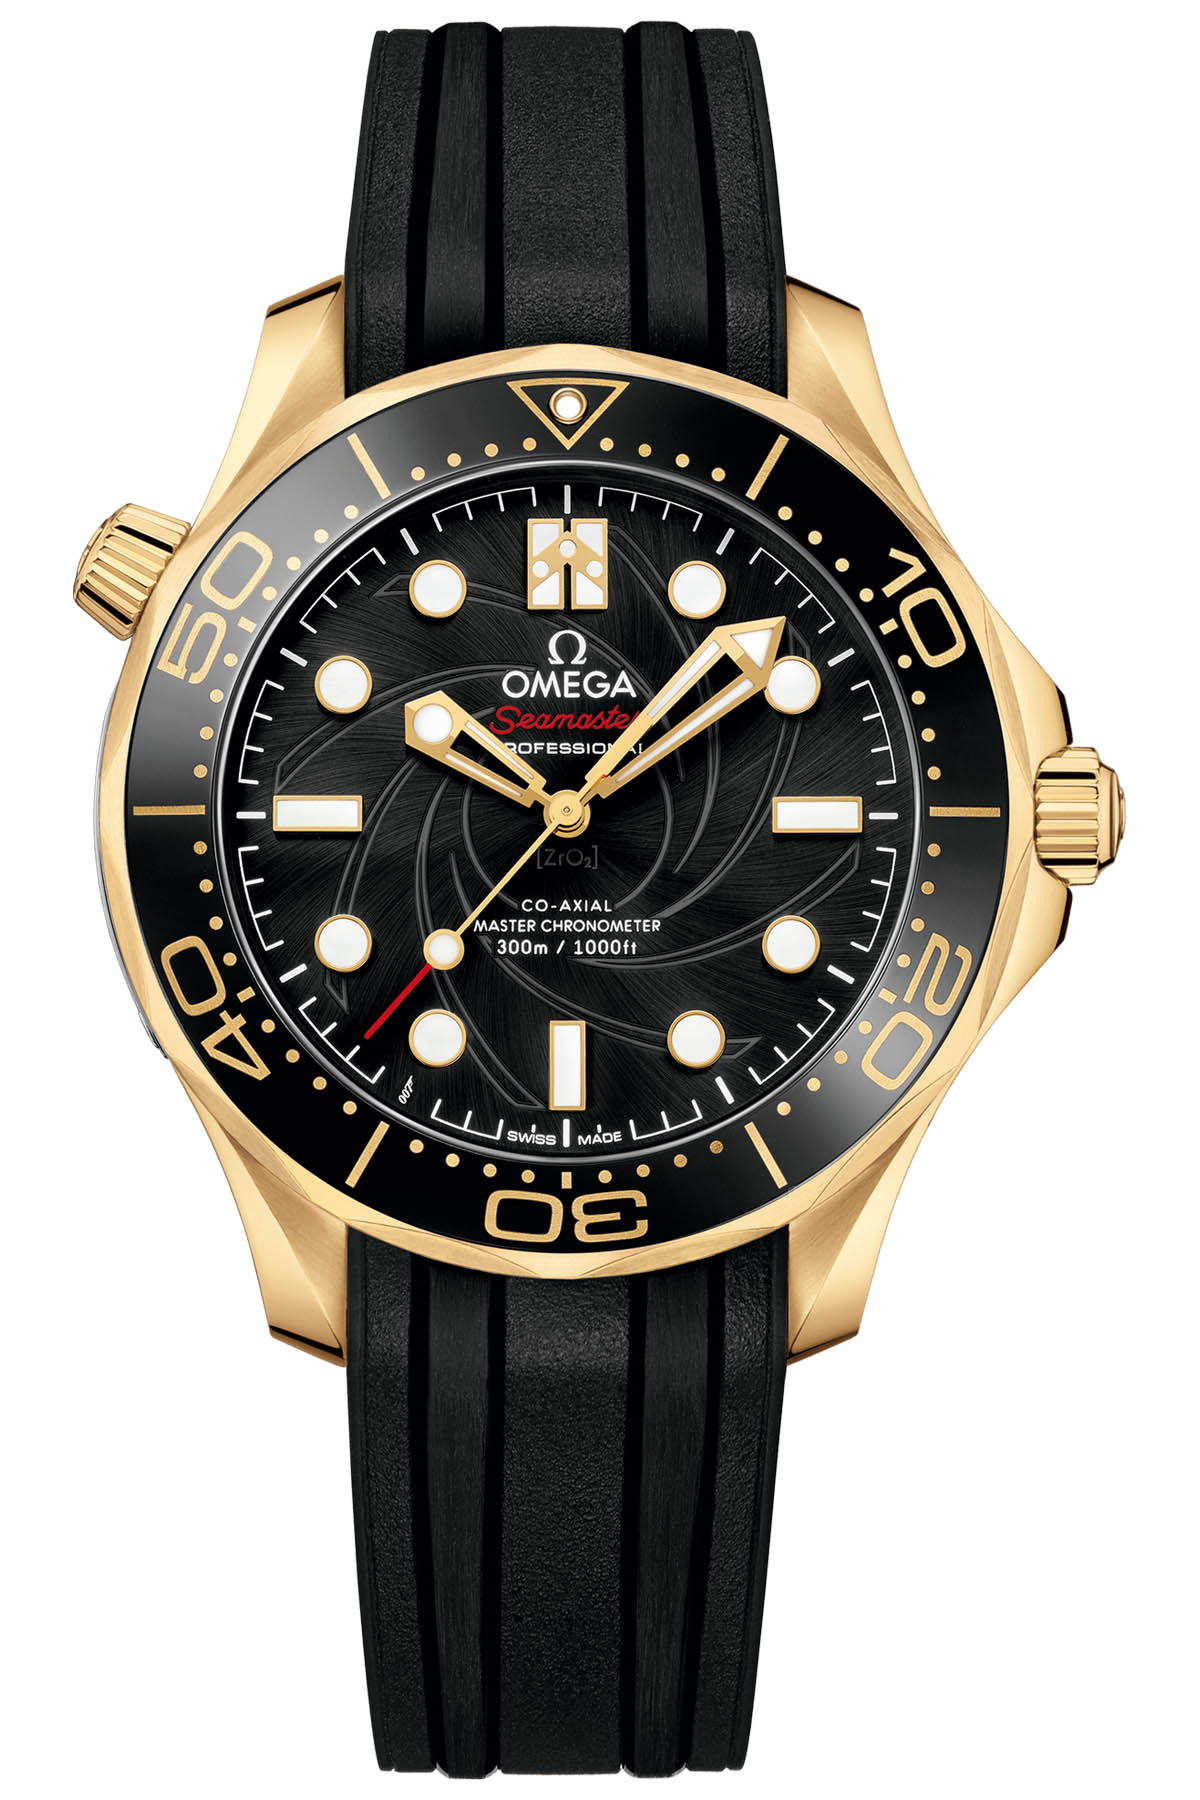 Omega Seamaster Diver 300M James Bond Limited Edition Set